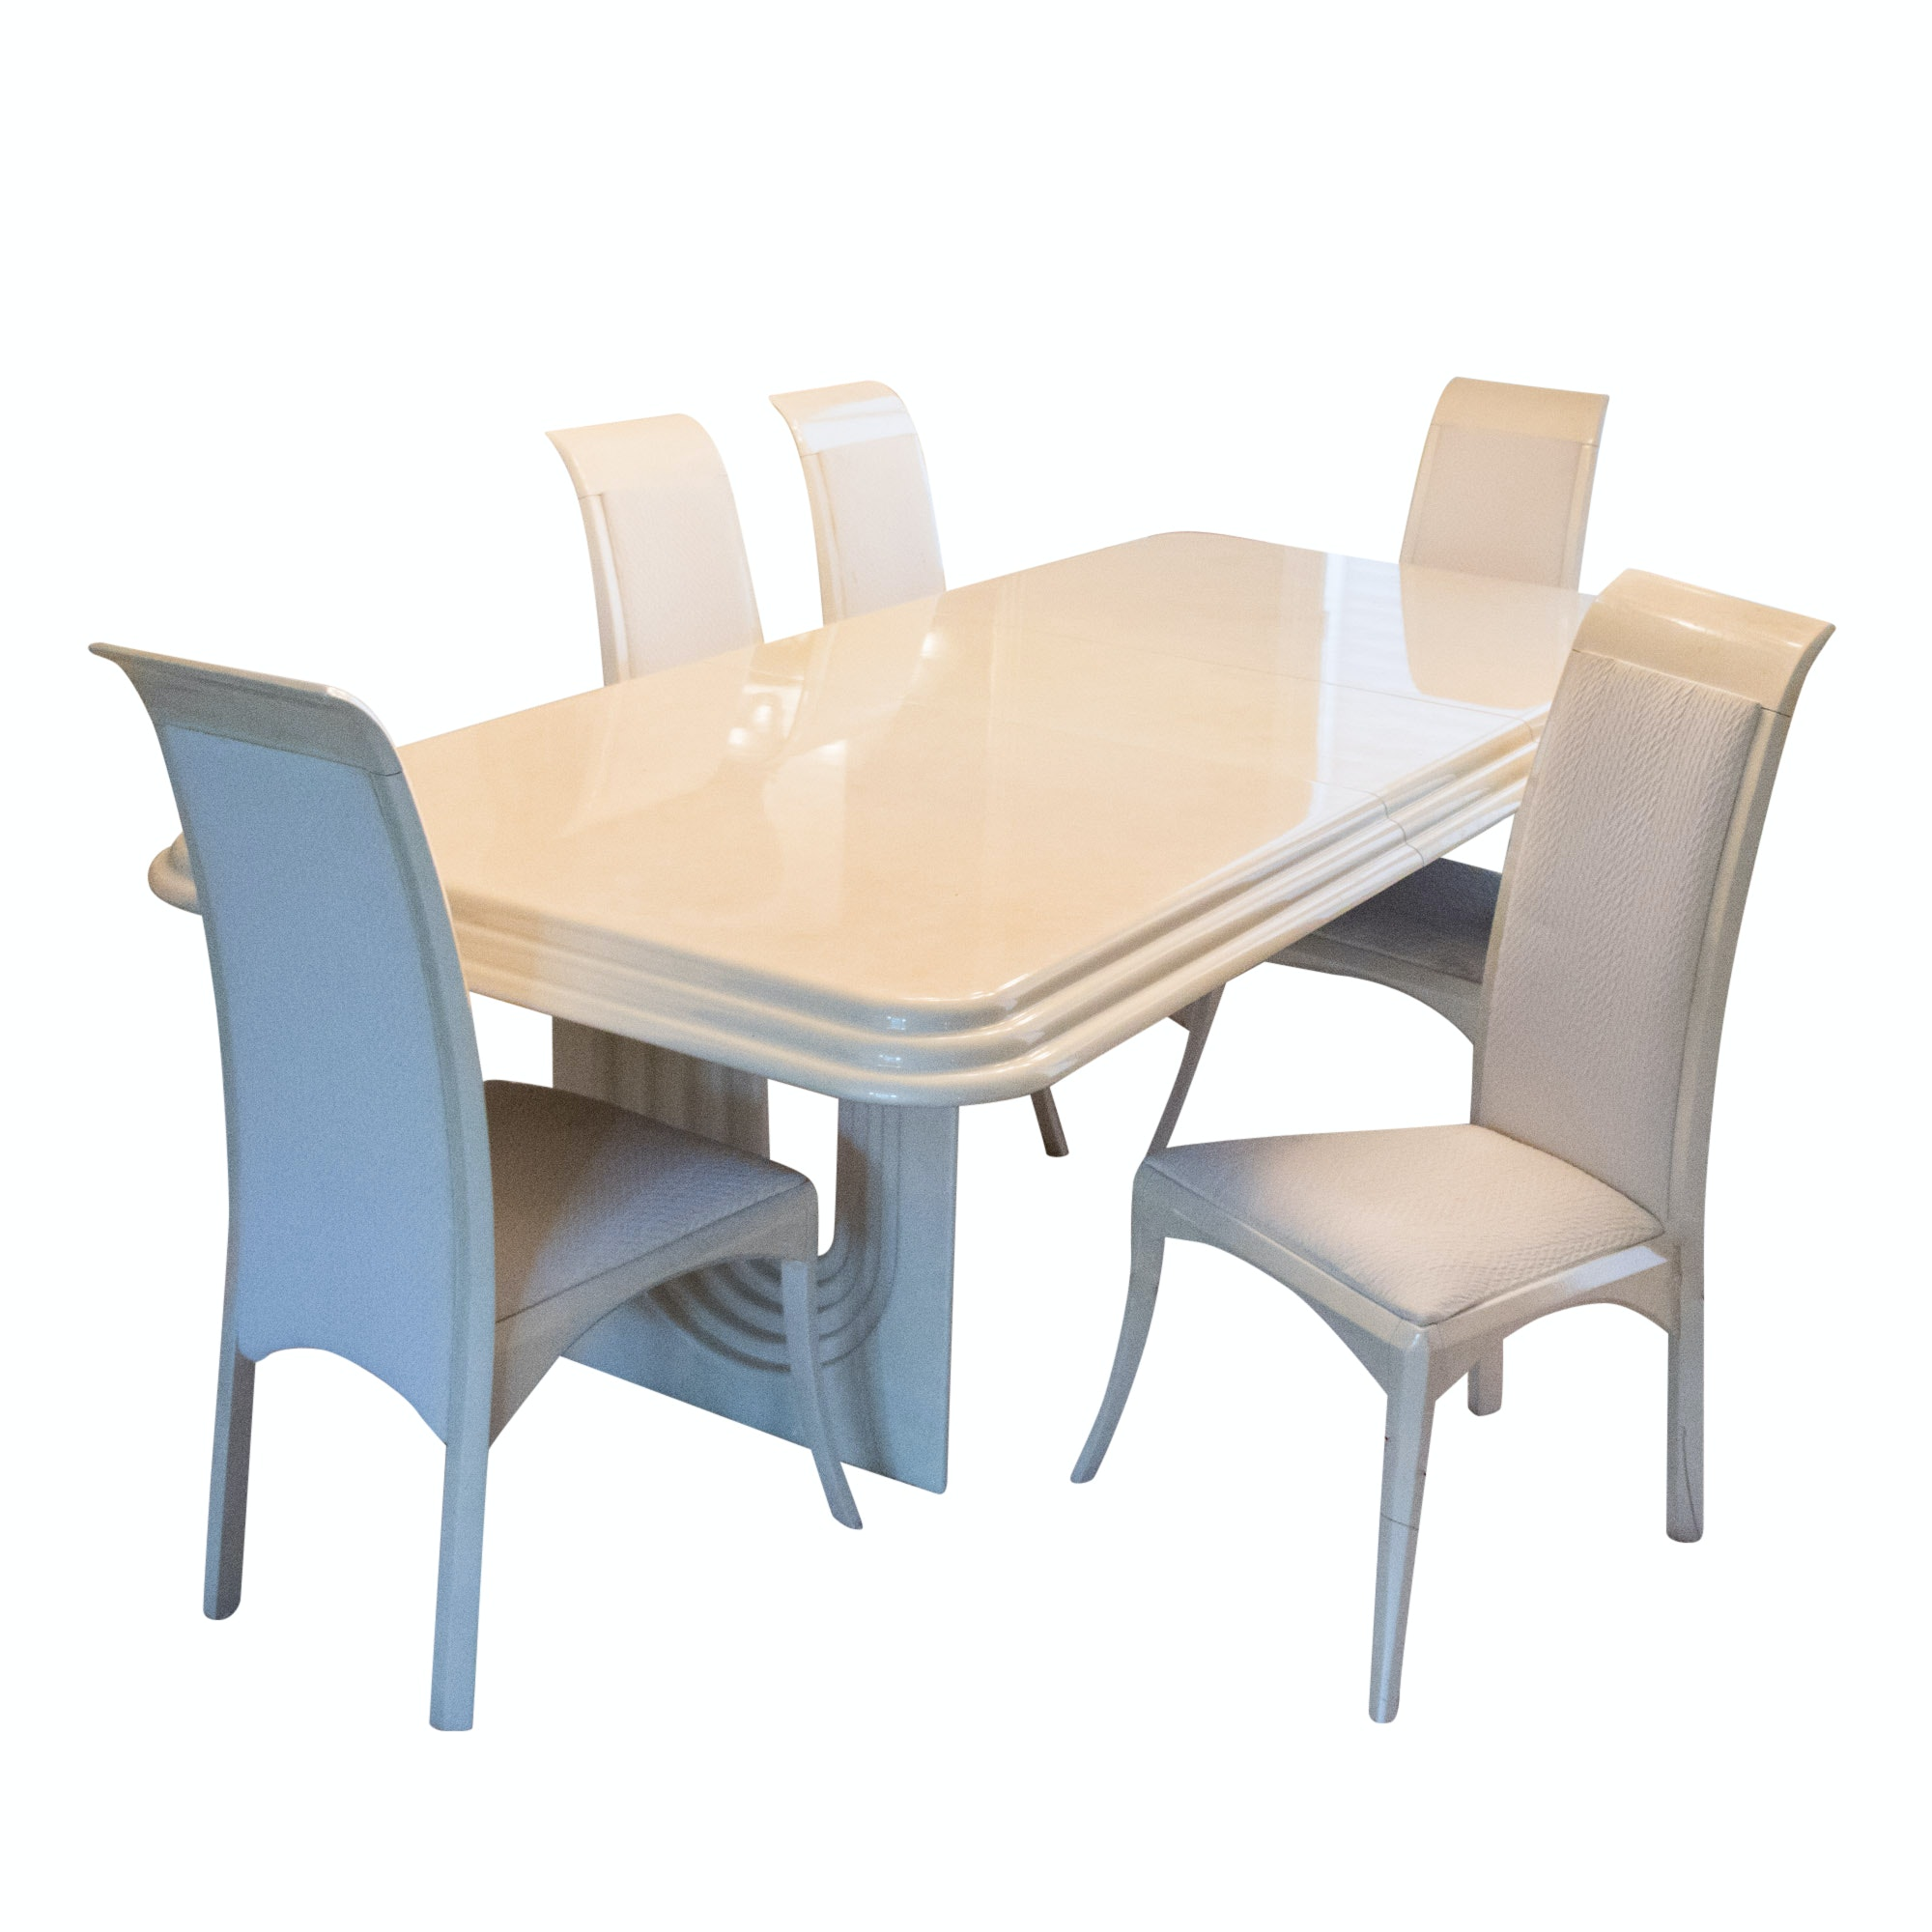 Art Deco Style Dining Table and Chairs by Elkin's Furniture, Late 20th Century